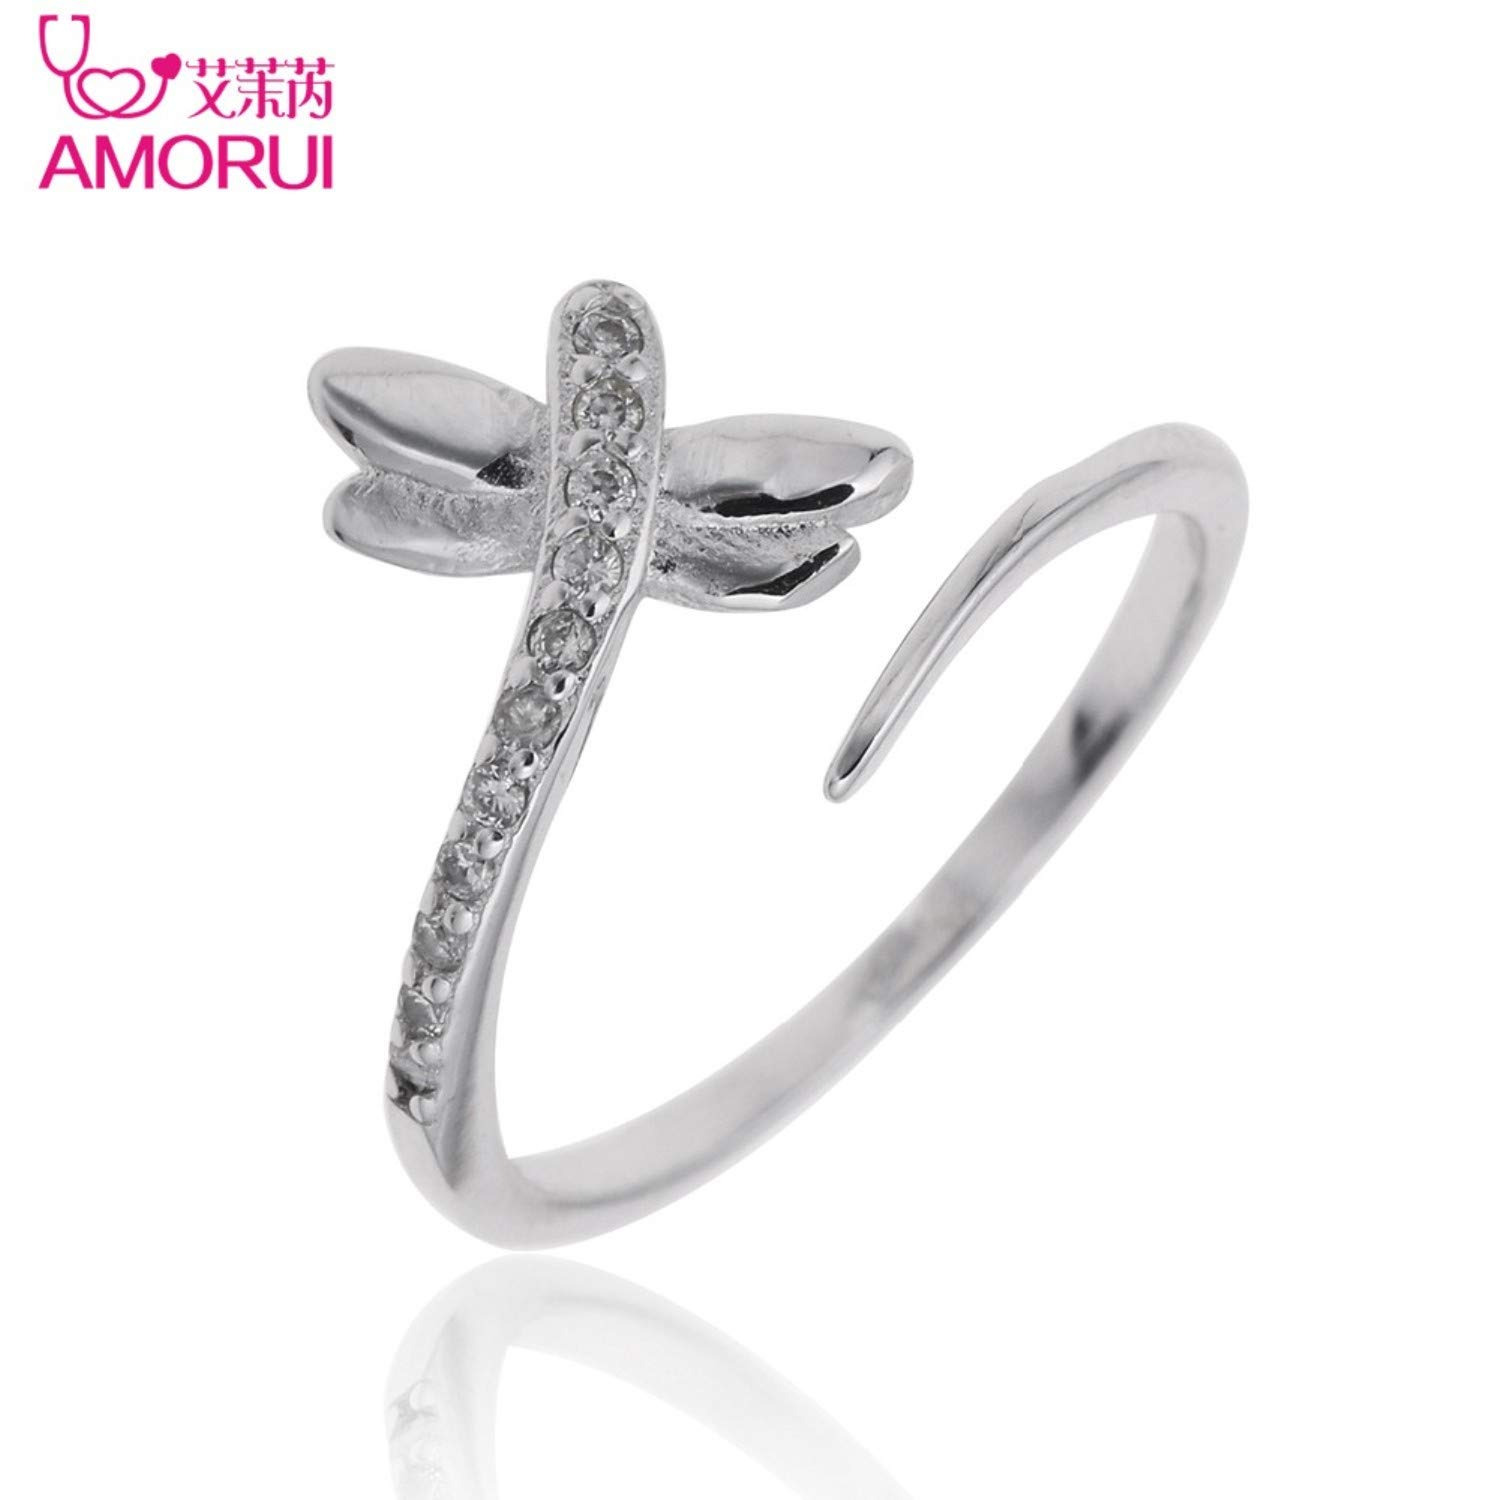 Amazon.com: JEWH Silver Color Open Ring - CZ Stone Engagement Women Jewelry - Copper Zircon Dragonfly Wedding Rings for Women - Elegent Sweet Design for ...